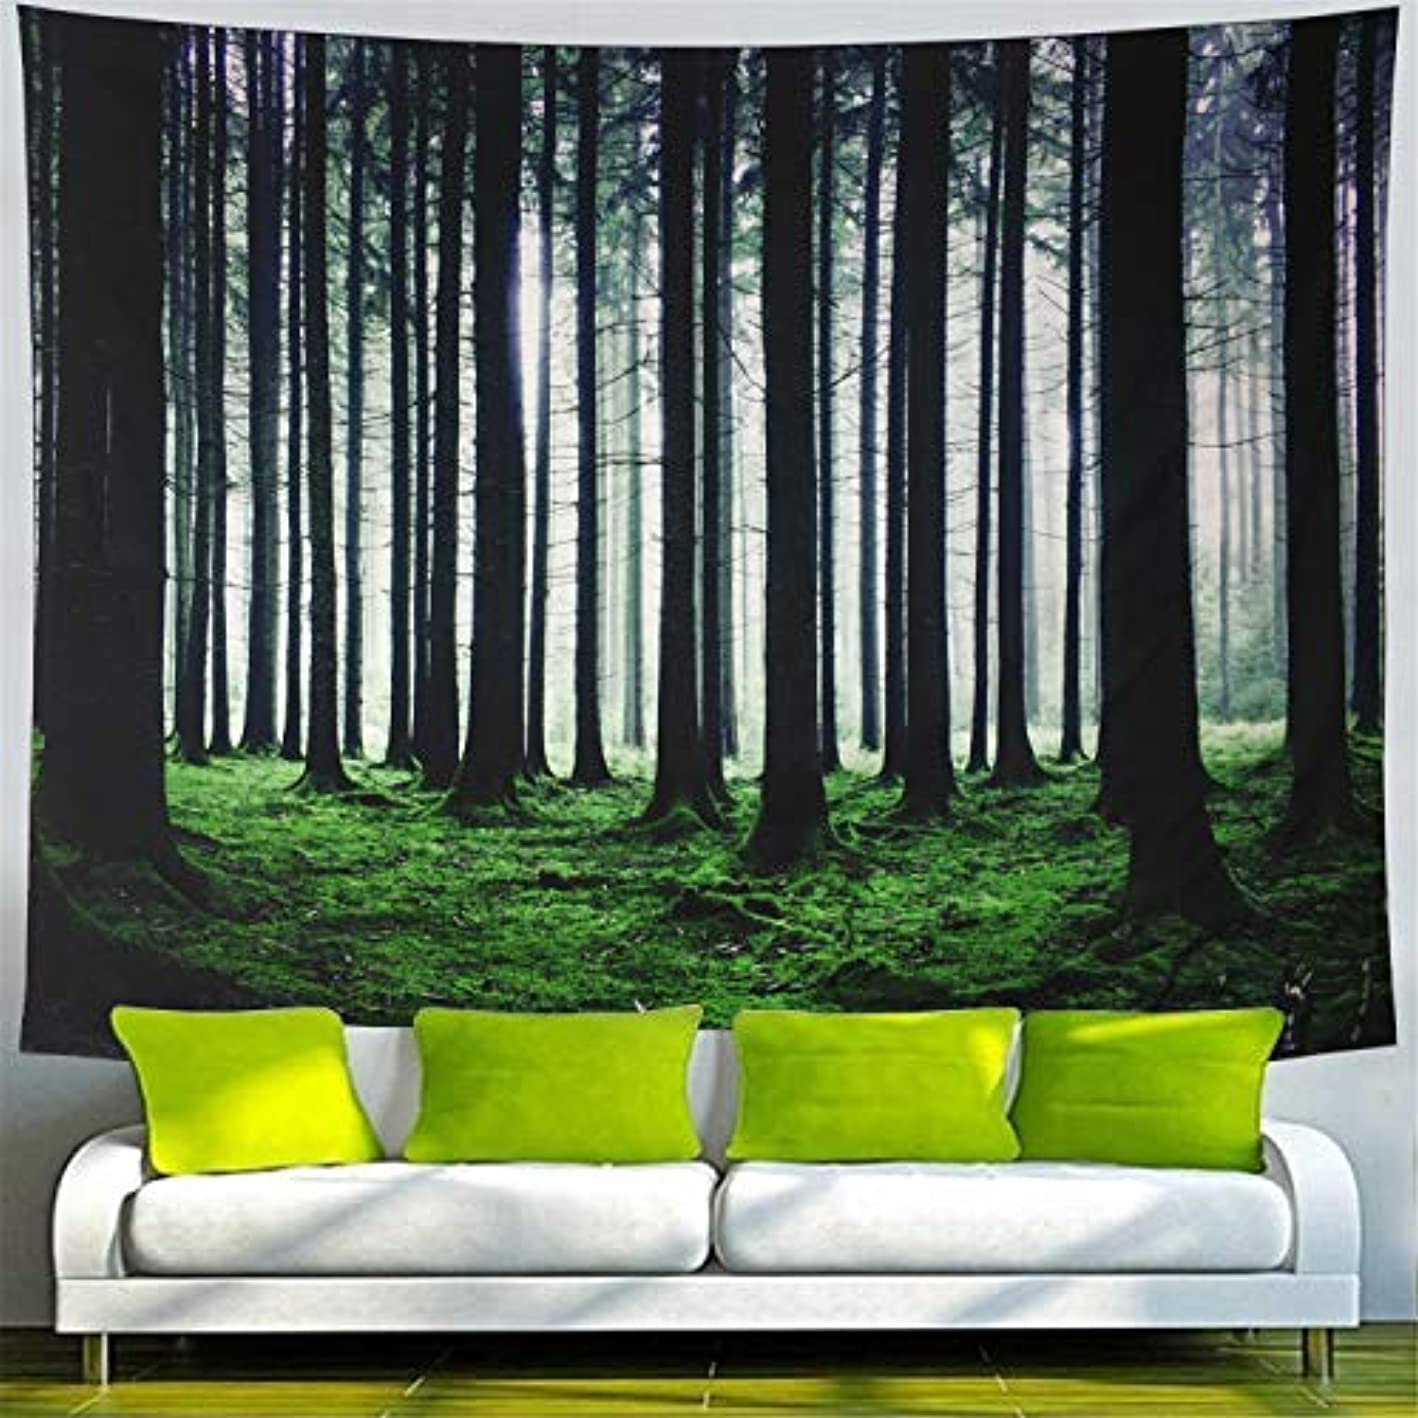 Tapestry Forest Tapestry Misty Trunks Forest Wall Tapestry Grey Forest Trees Wall Hanging Tapestry Psychedelic Nature Landscape Tapestry for Bedroom Living Room Dorm